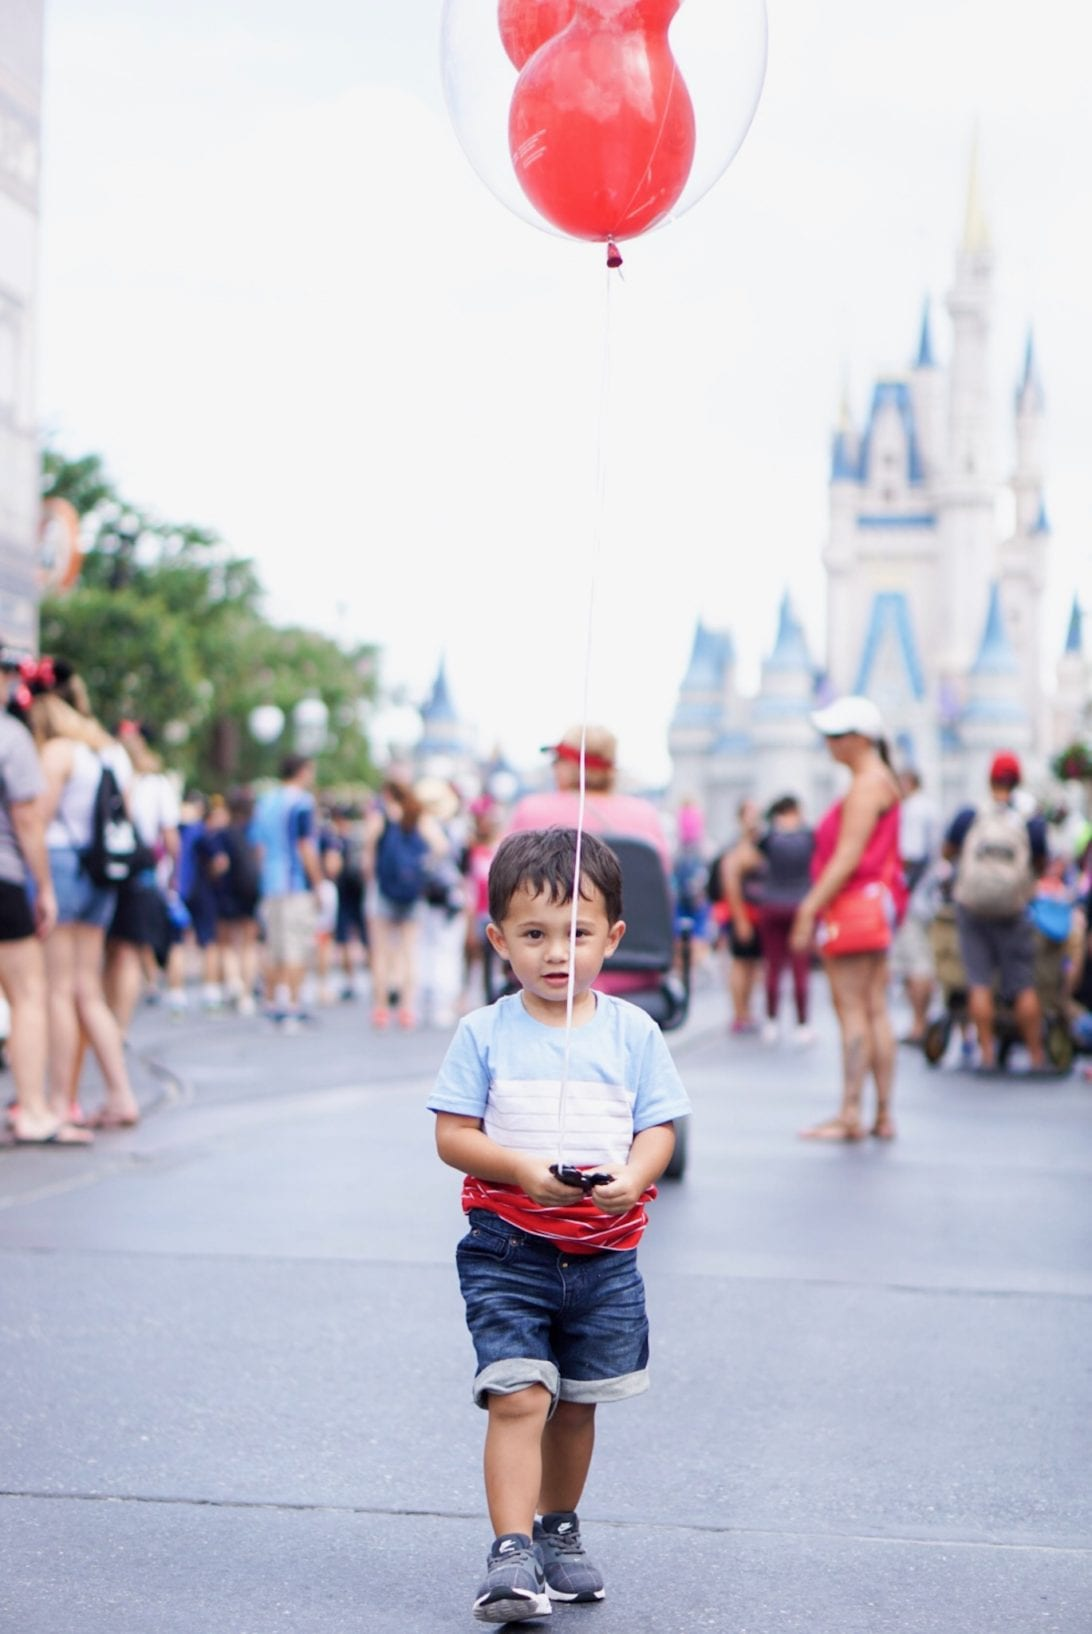 DISNEY WITH A TODDLER, TIPS FOR FAMILIES VISITING DISNEY, DISNEY WORLD, WHAT TO DO IN DISNEY WORLD, VISITING DISNEY WORLD, FIRST TIME IN DISNEY WORLD, VISITING DISNEY WORLD WITH A TODDLER